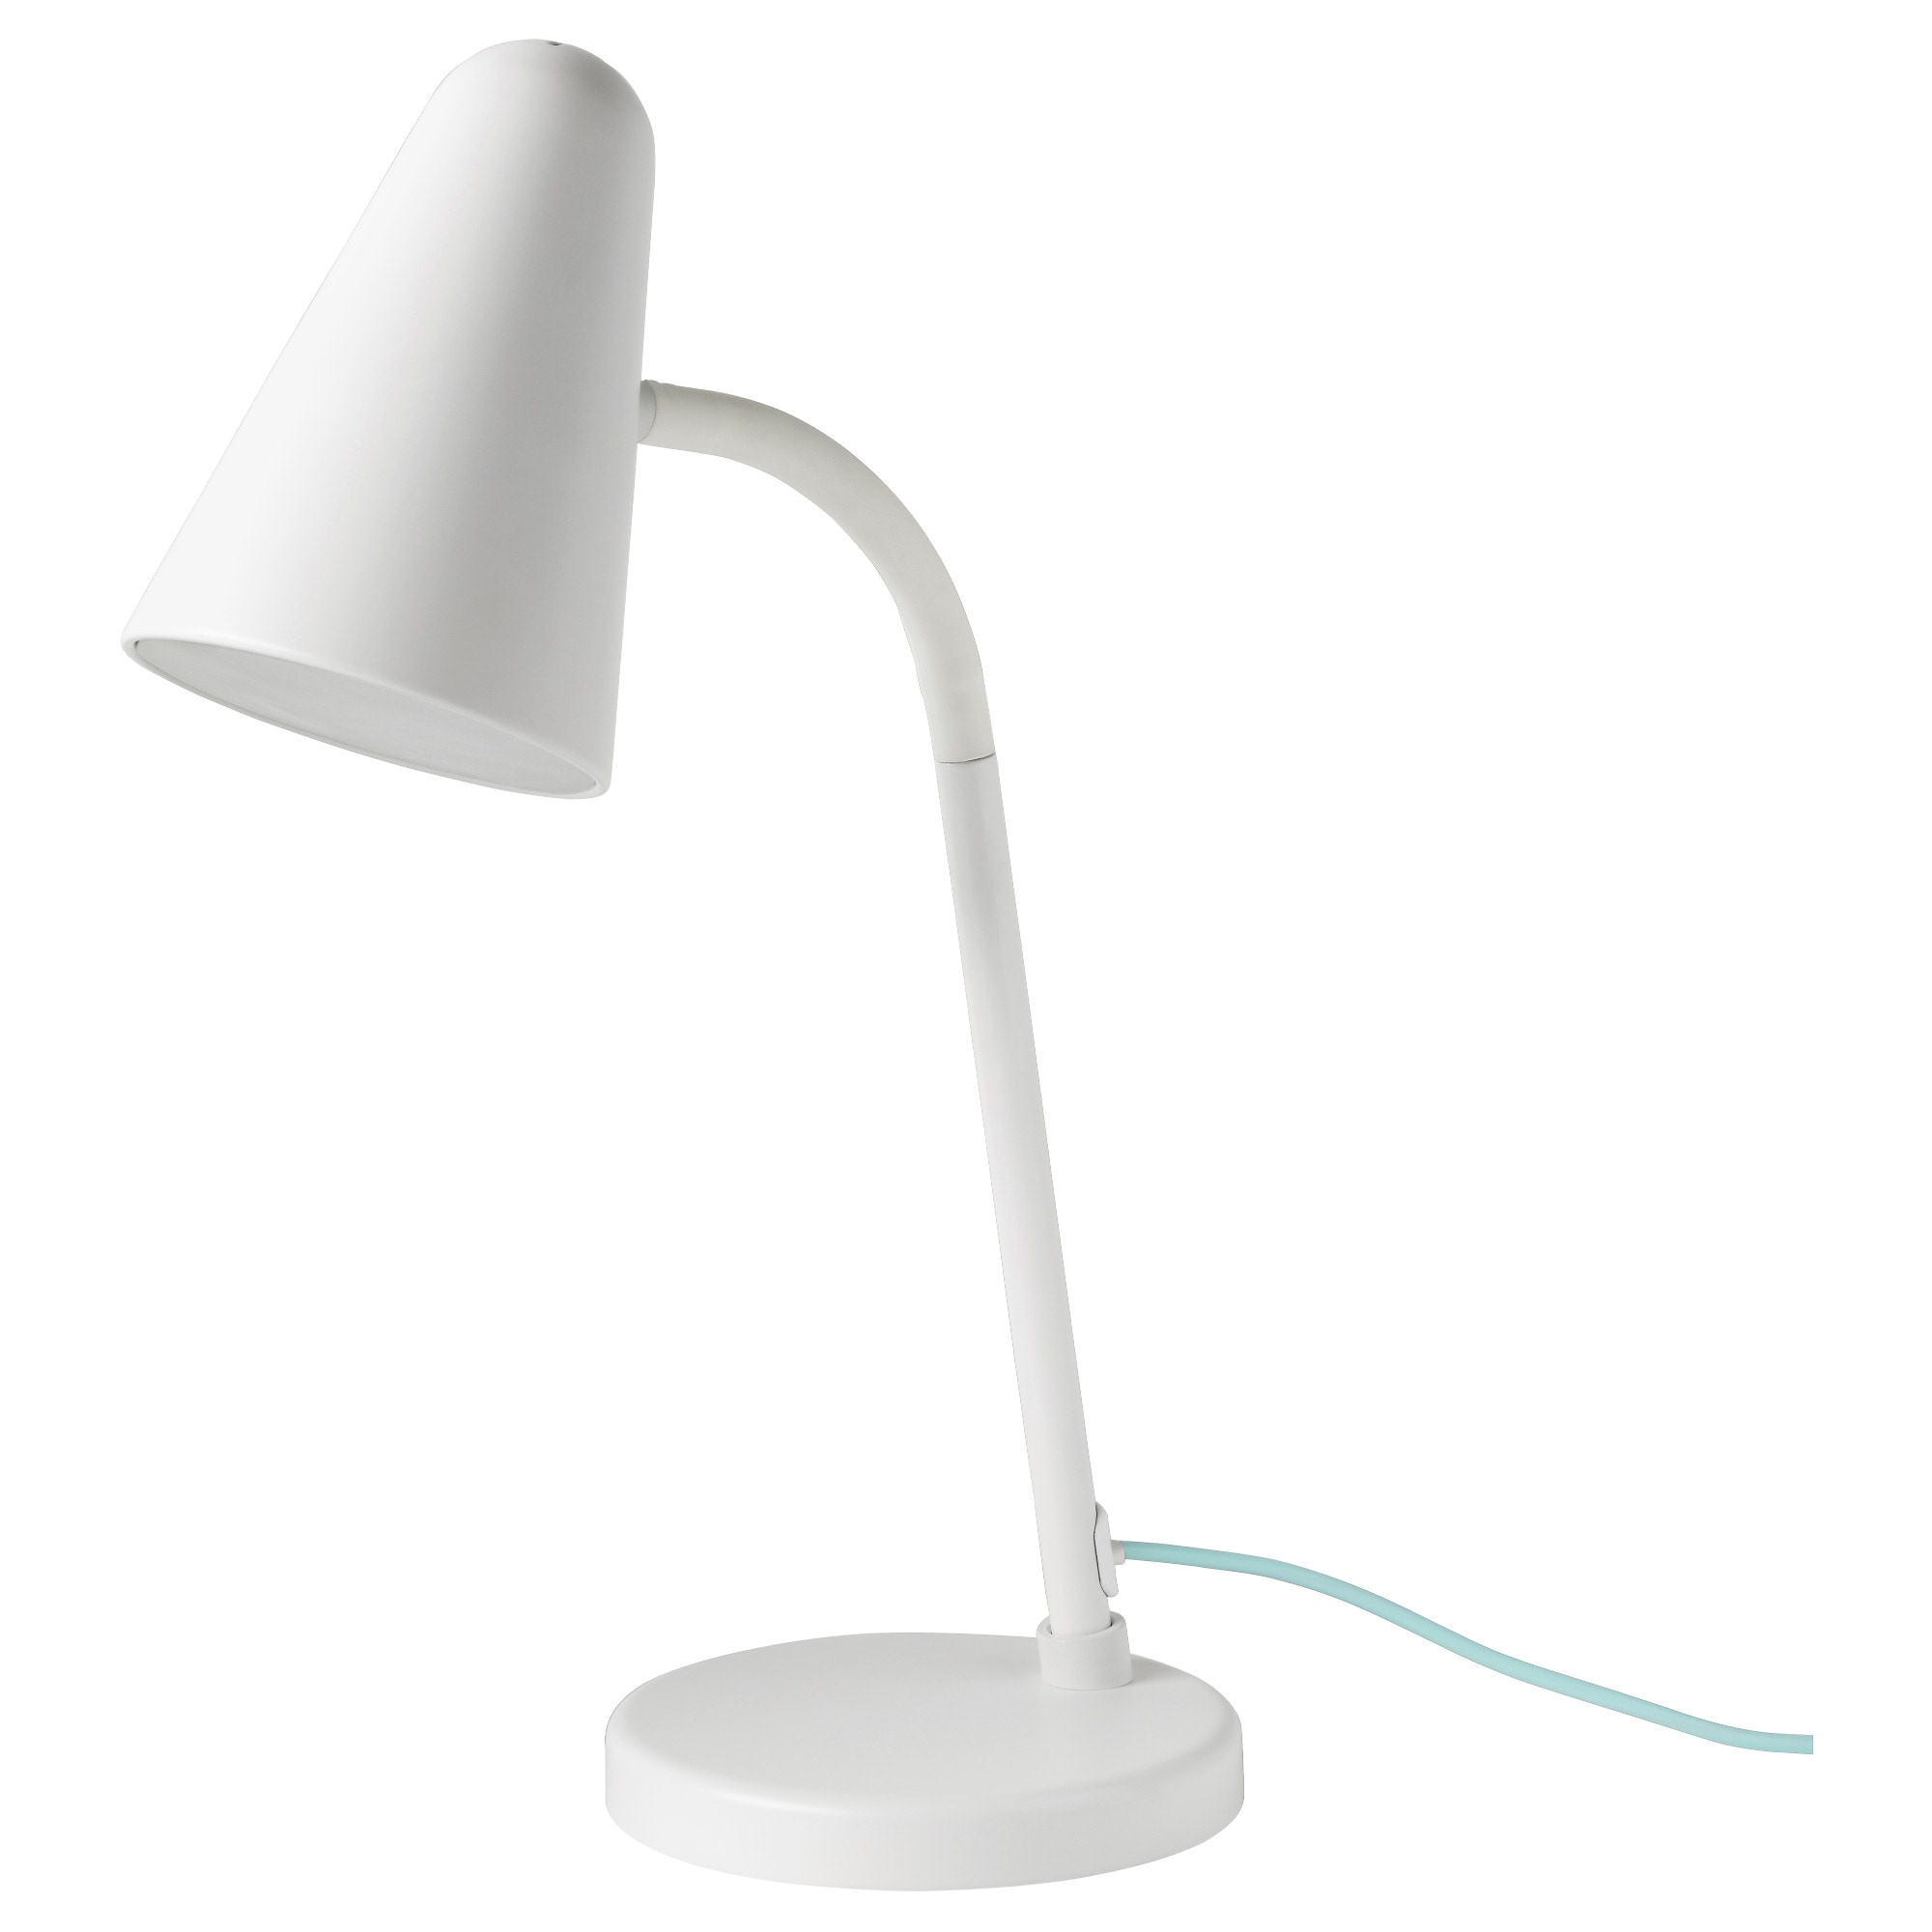 Lampe lave ikea ikea lamp works with solar energy with - Lampe a lave ikea ...